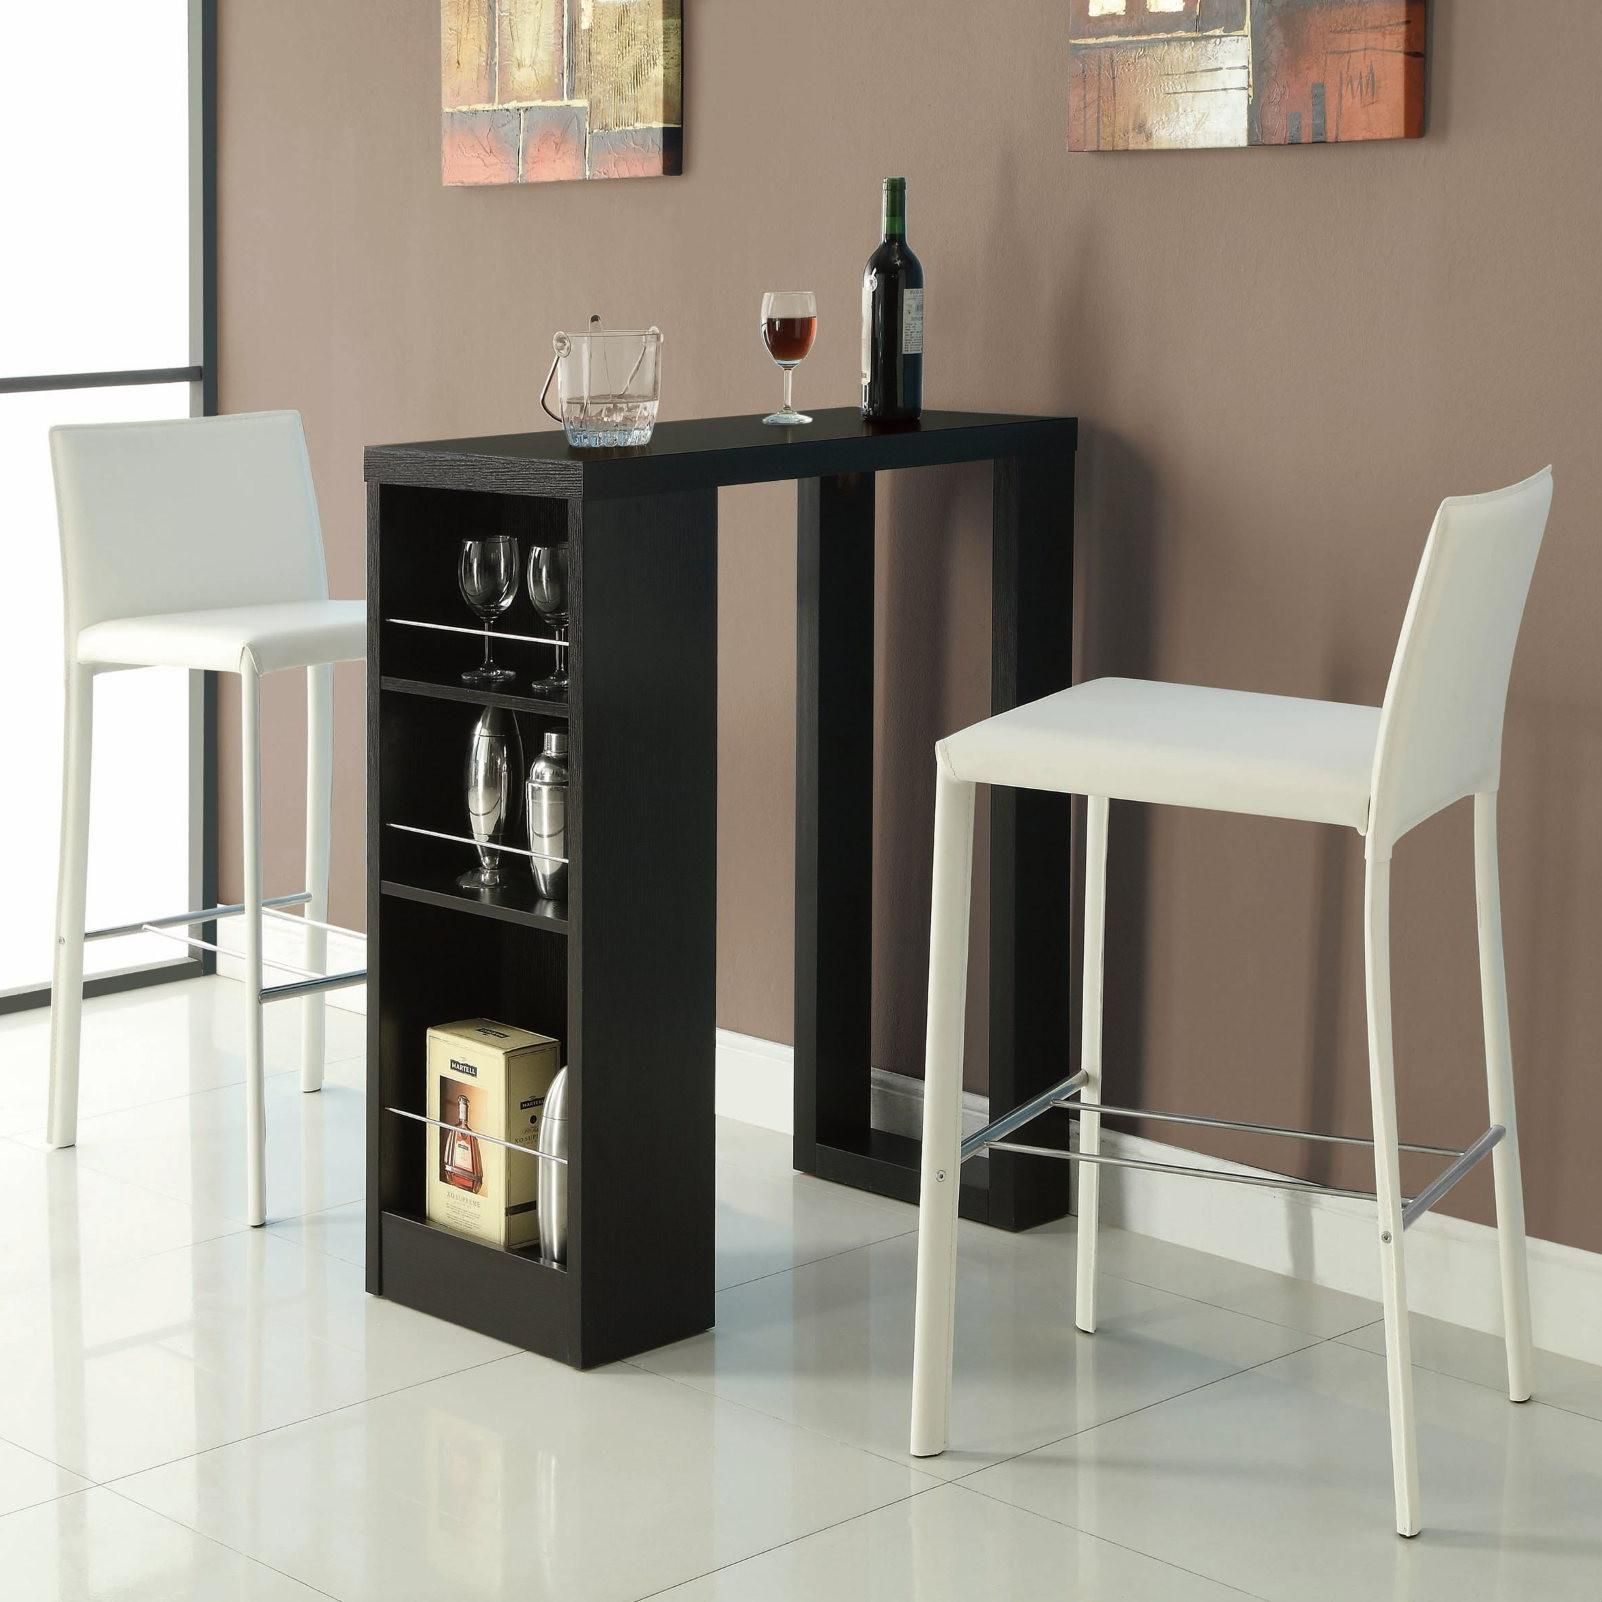 104028 Bar Units And Bar Tables Small Bar Table With Storage